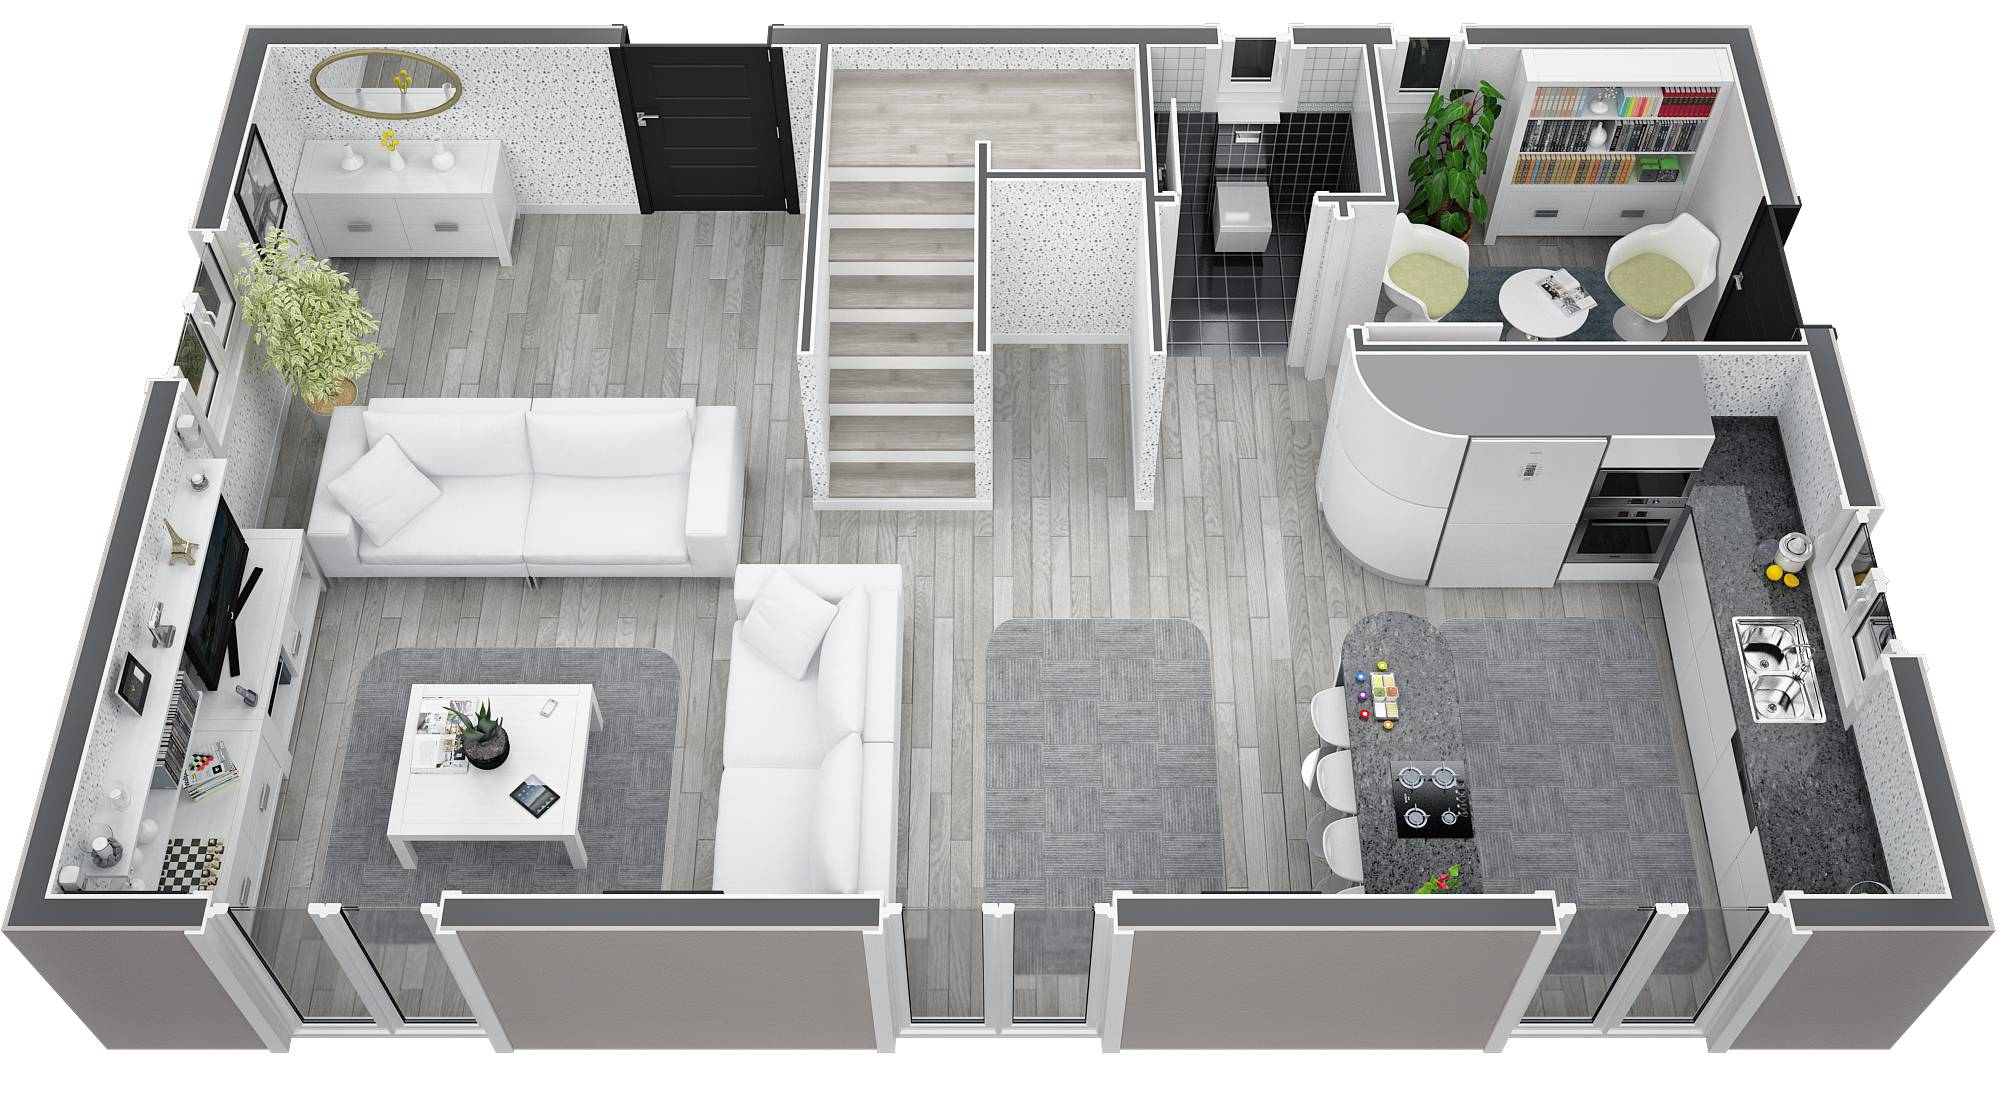 Mod le villa traditionnelle 100m2 tage r alisable dans for Plan de maison etage 3 chambres